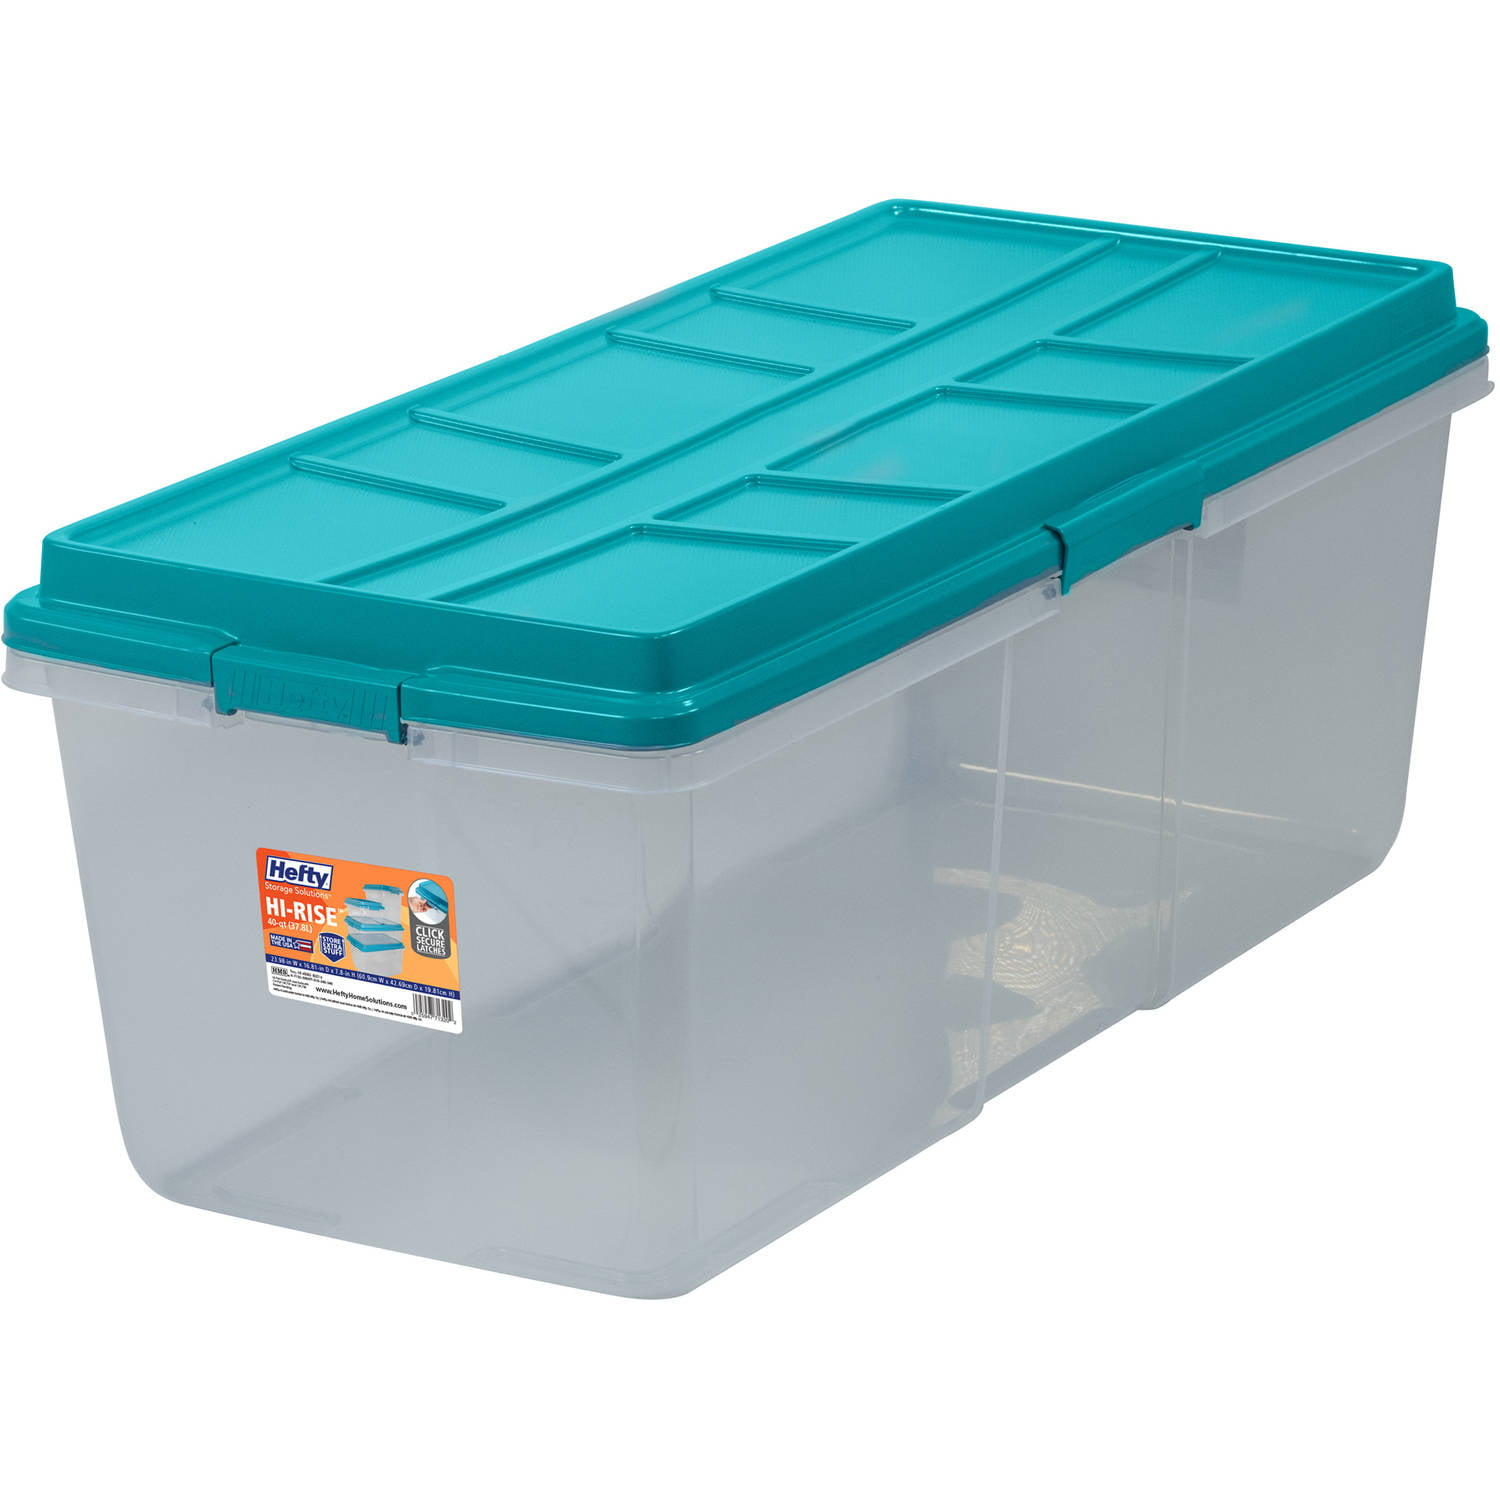 Click here to buy Hefty HI-RISE Storage Bins, 113 Qt. XL Stackable Bin with Latch, Teal Clear by HMS Mfg. Co..